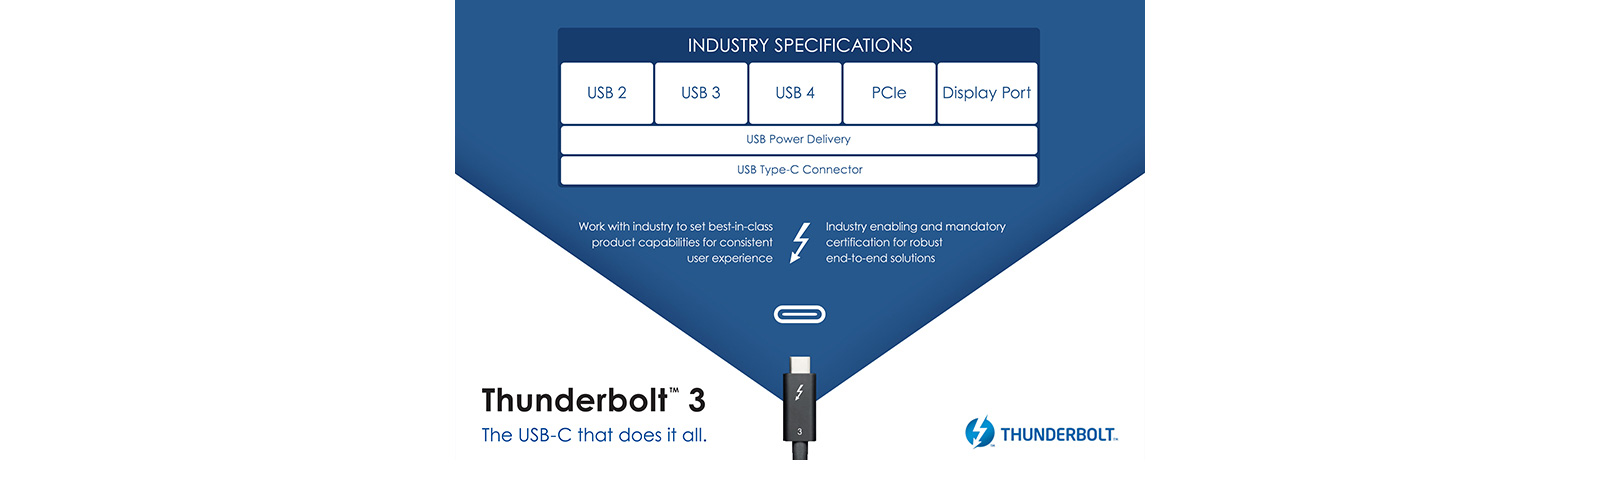 The USB Promoter Group has announced the USB4 specification